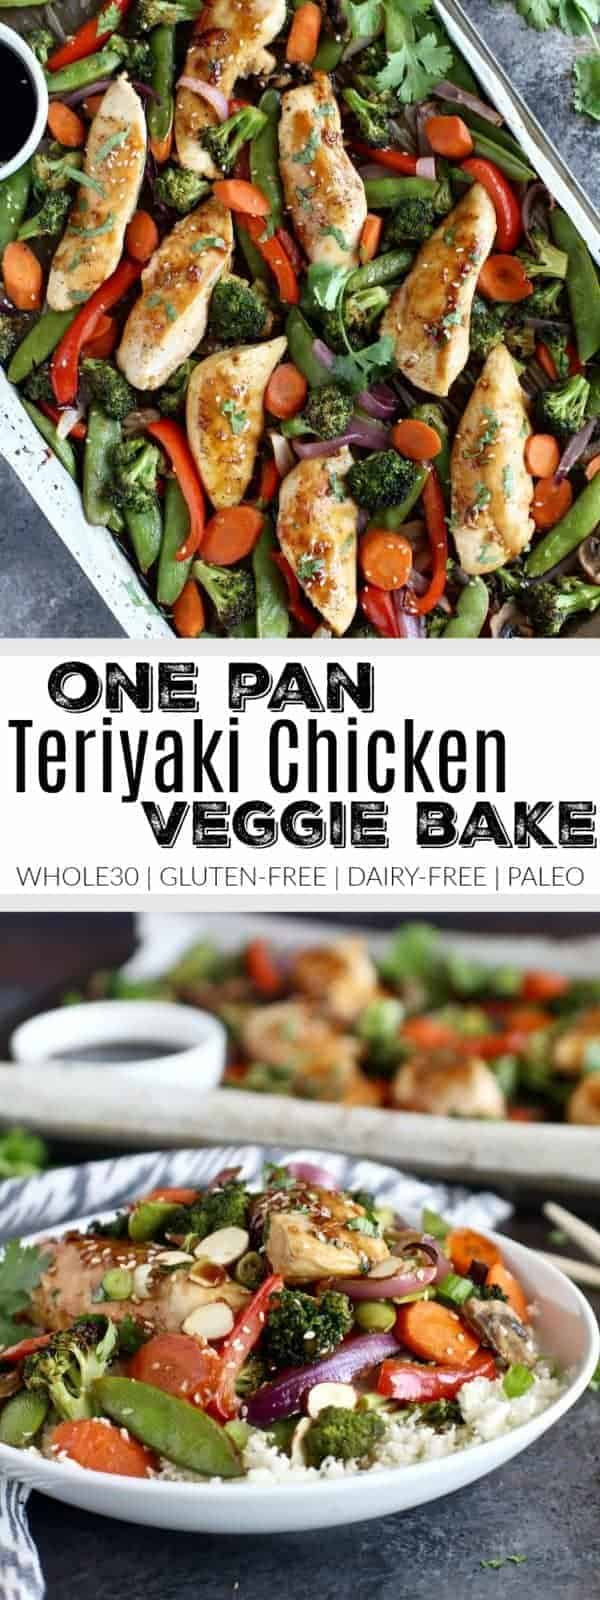 Full of flavor, nutrient-dense veggies and satisfying protein. This One-Pan Teriyaki Chicken Veggie Bake that's made with a simple homemade teriyaki sauce is Whole30-friendly and perfect for weeknight dinners. Whole30 | Gluten-free | Dairy-free | Paleo | http://therealfoodrds.com/one-pan-teriyaki-chicken-veggie-bake/